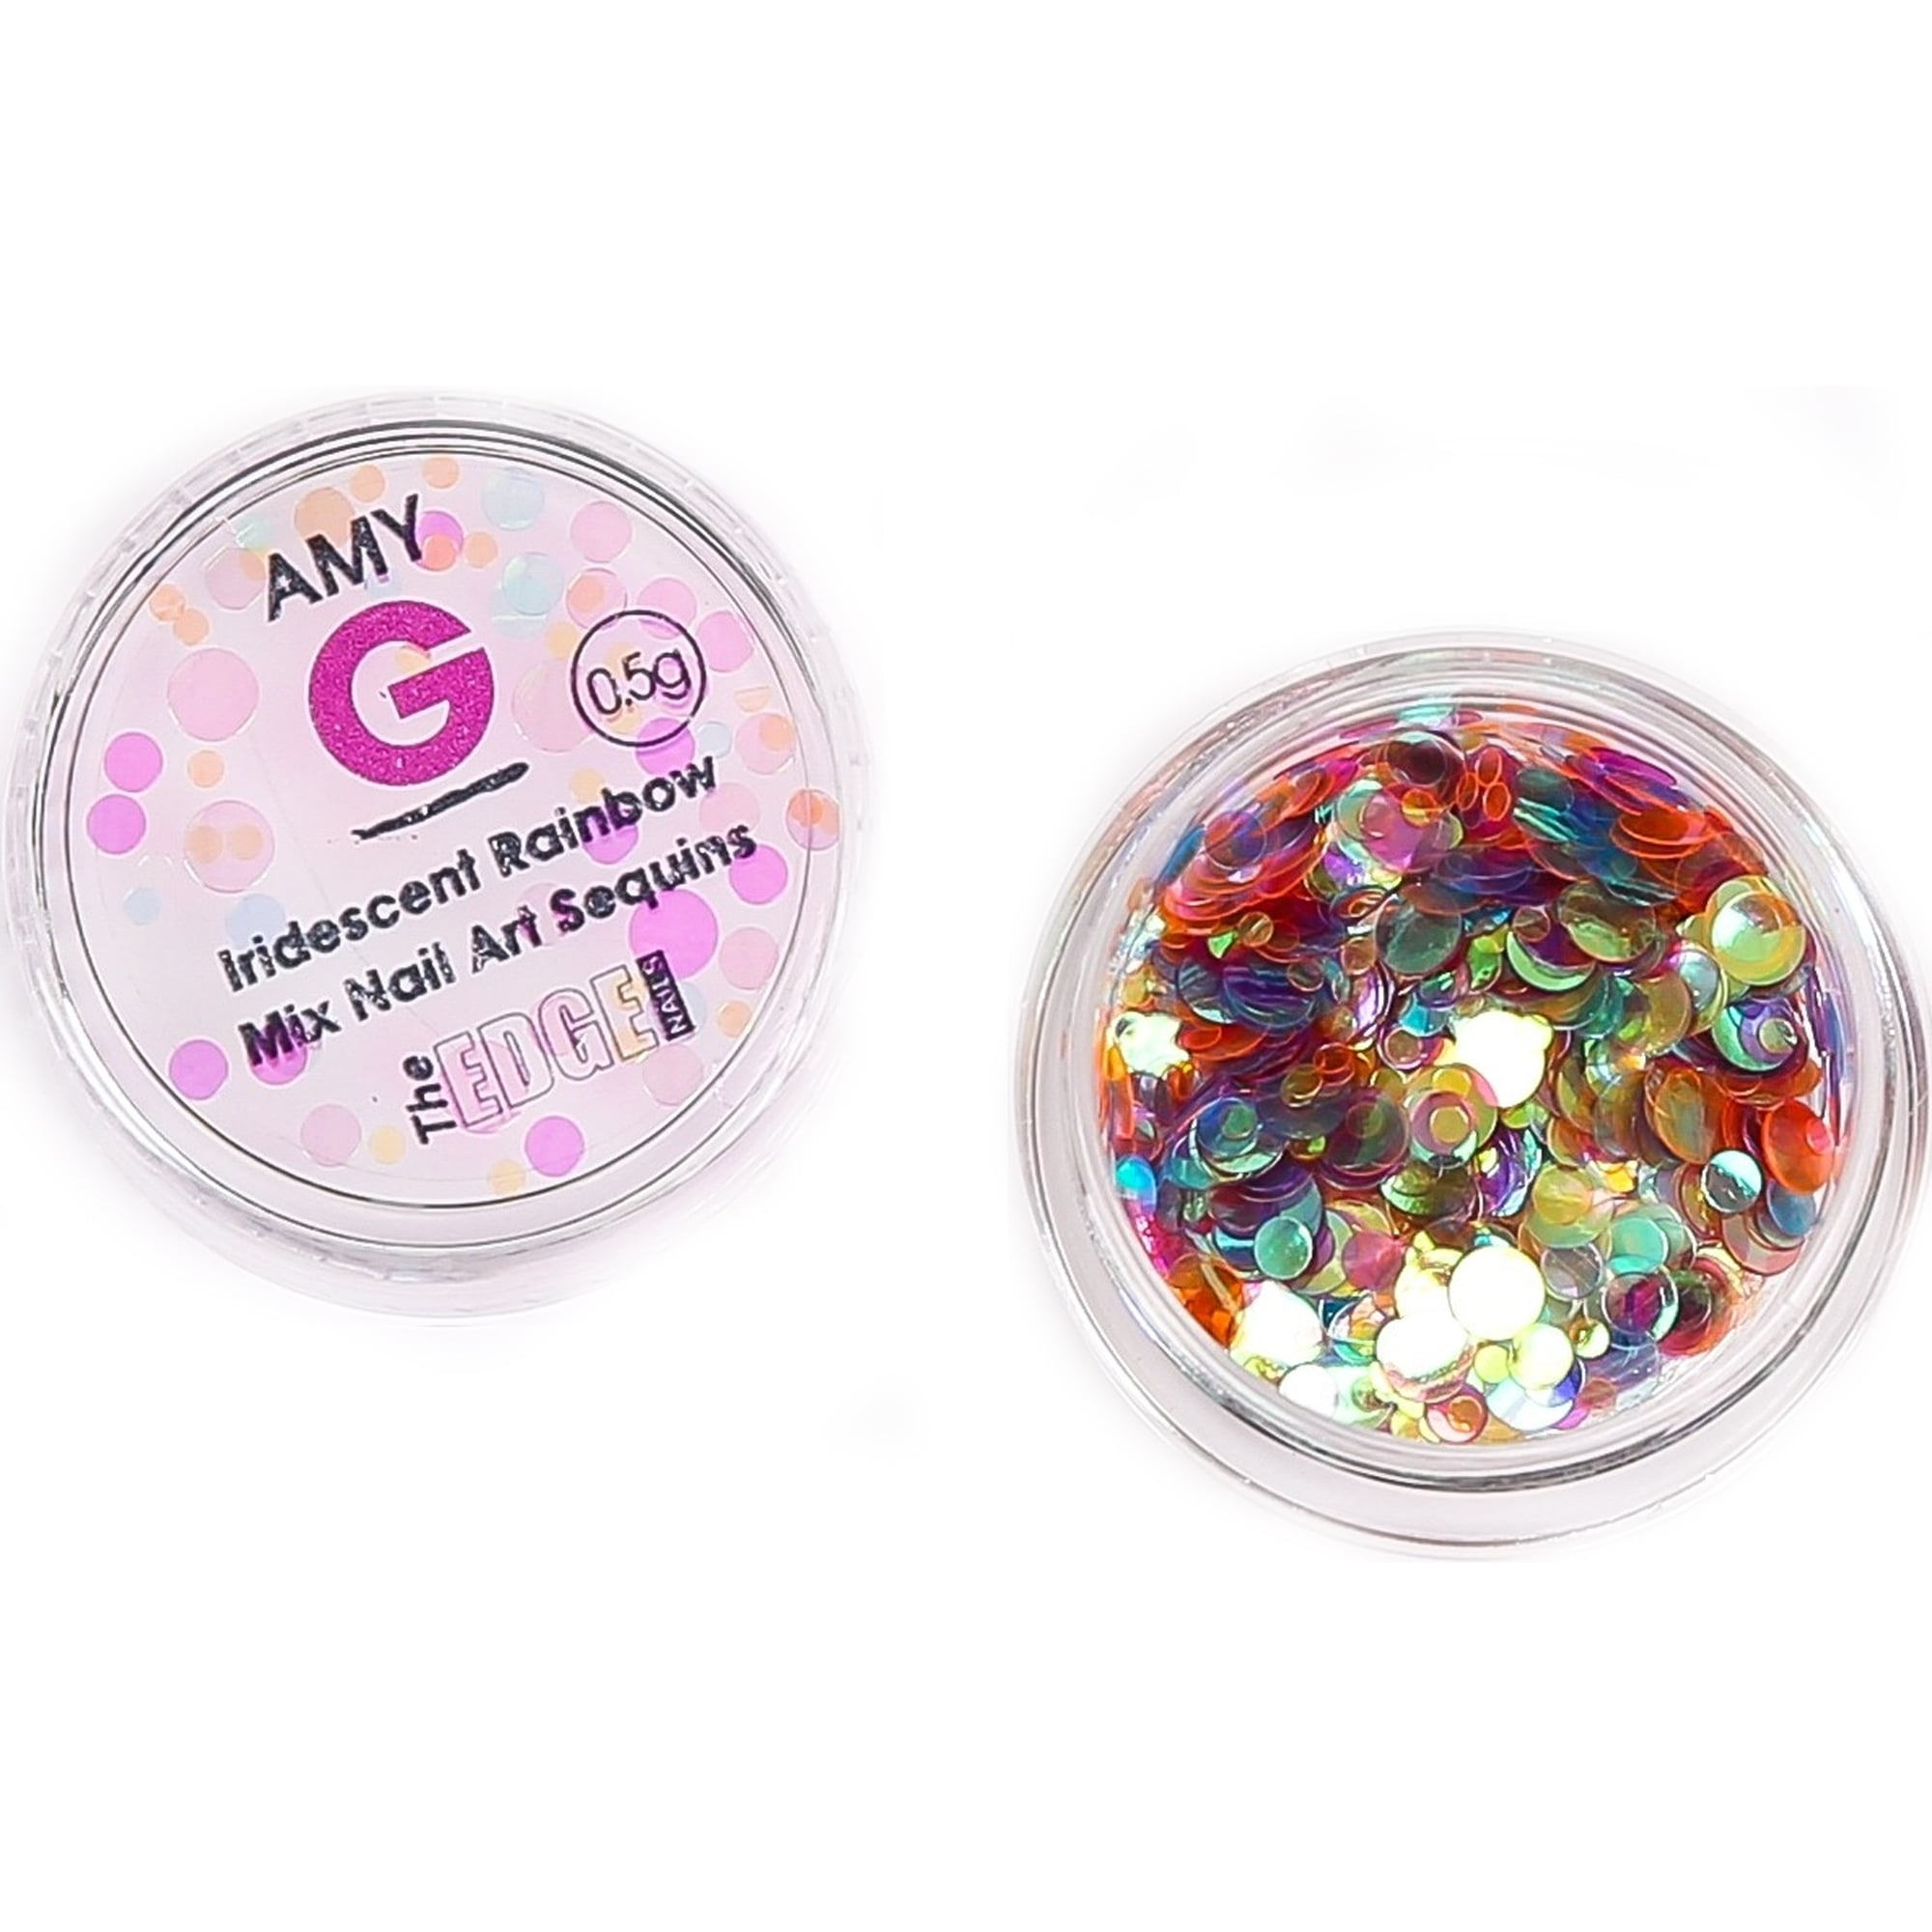 The Edge Nails Amy G - Iridescent Nail Art Sequins - Rainbow 0 5g (3003069)